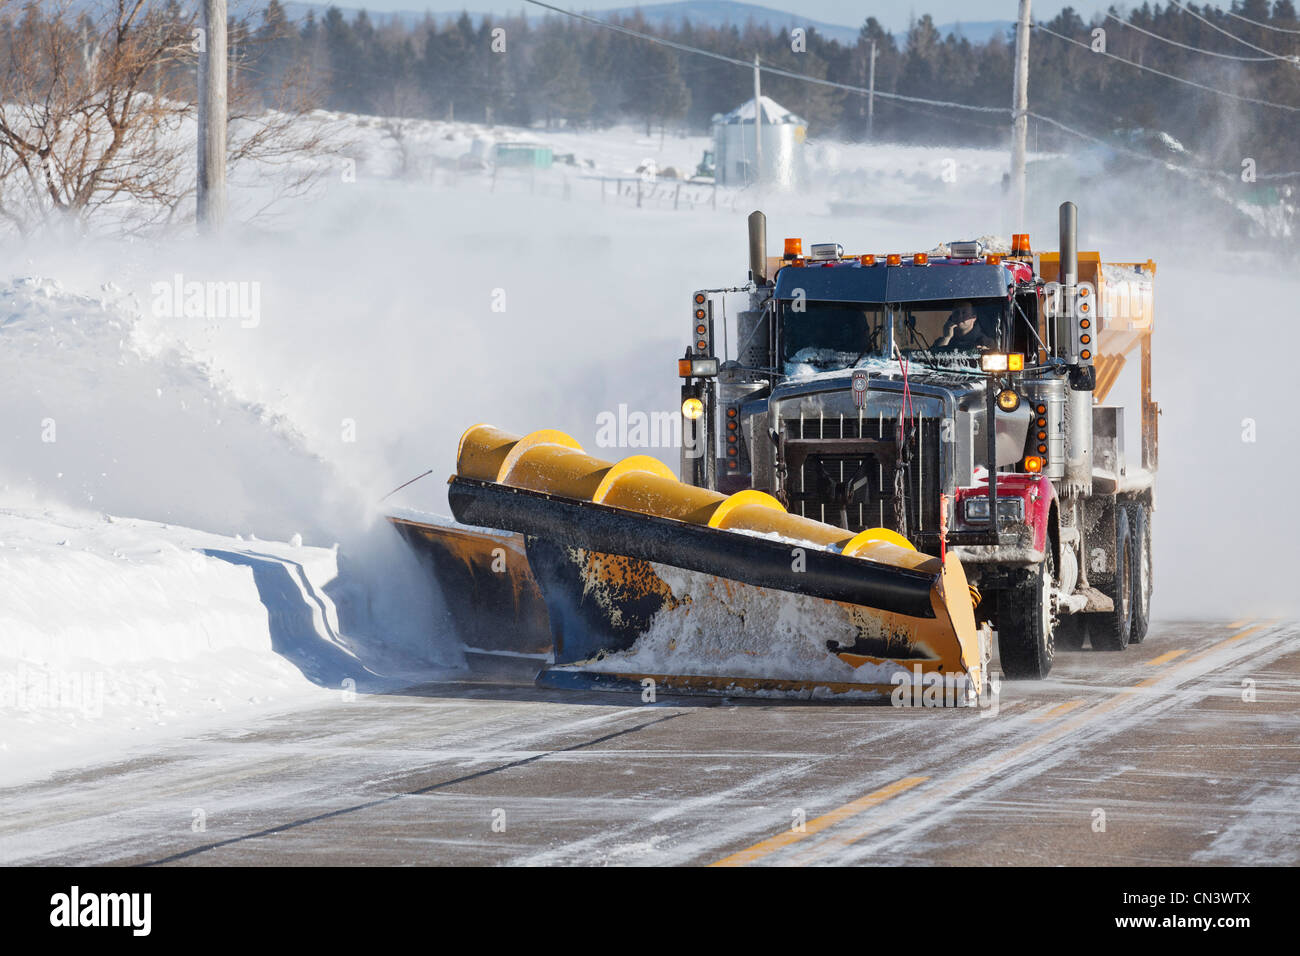 Canada, Quebec province, Charlevoix region, snow engine on a road - Stock Image